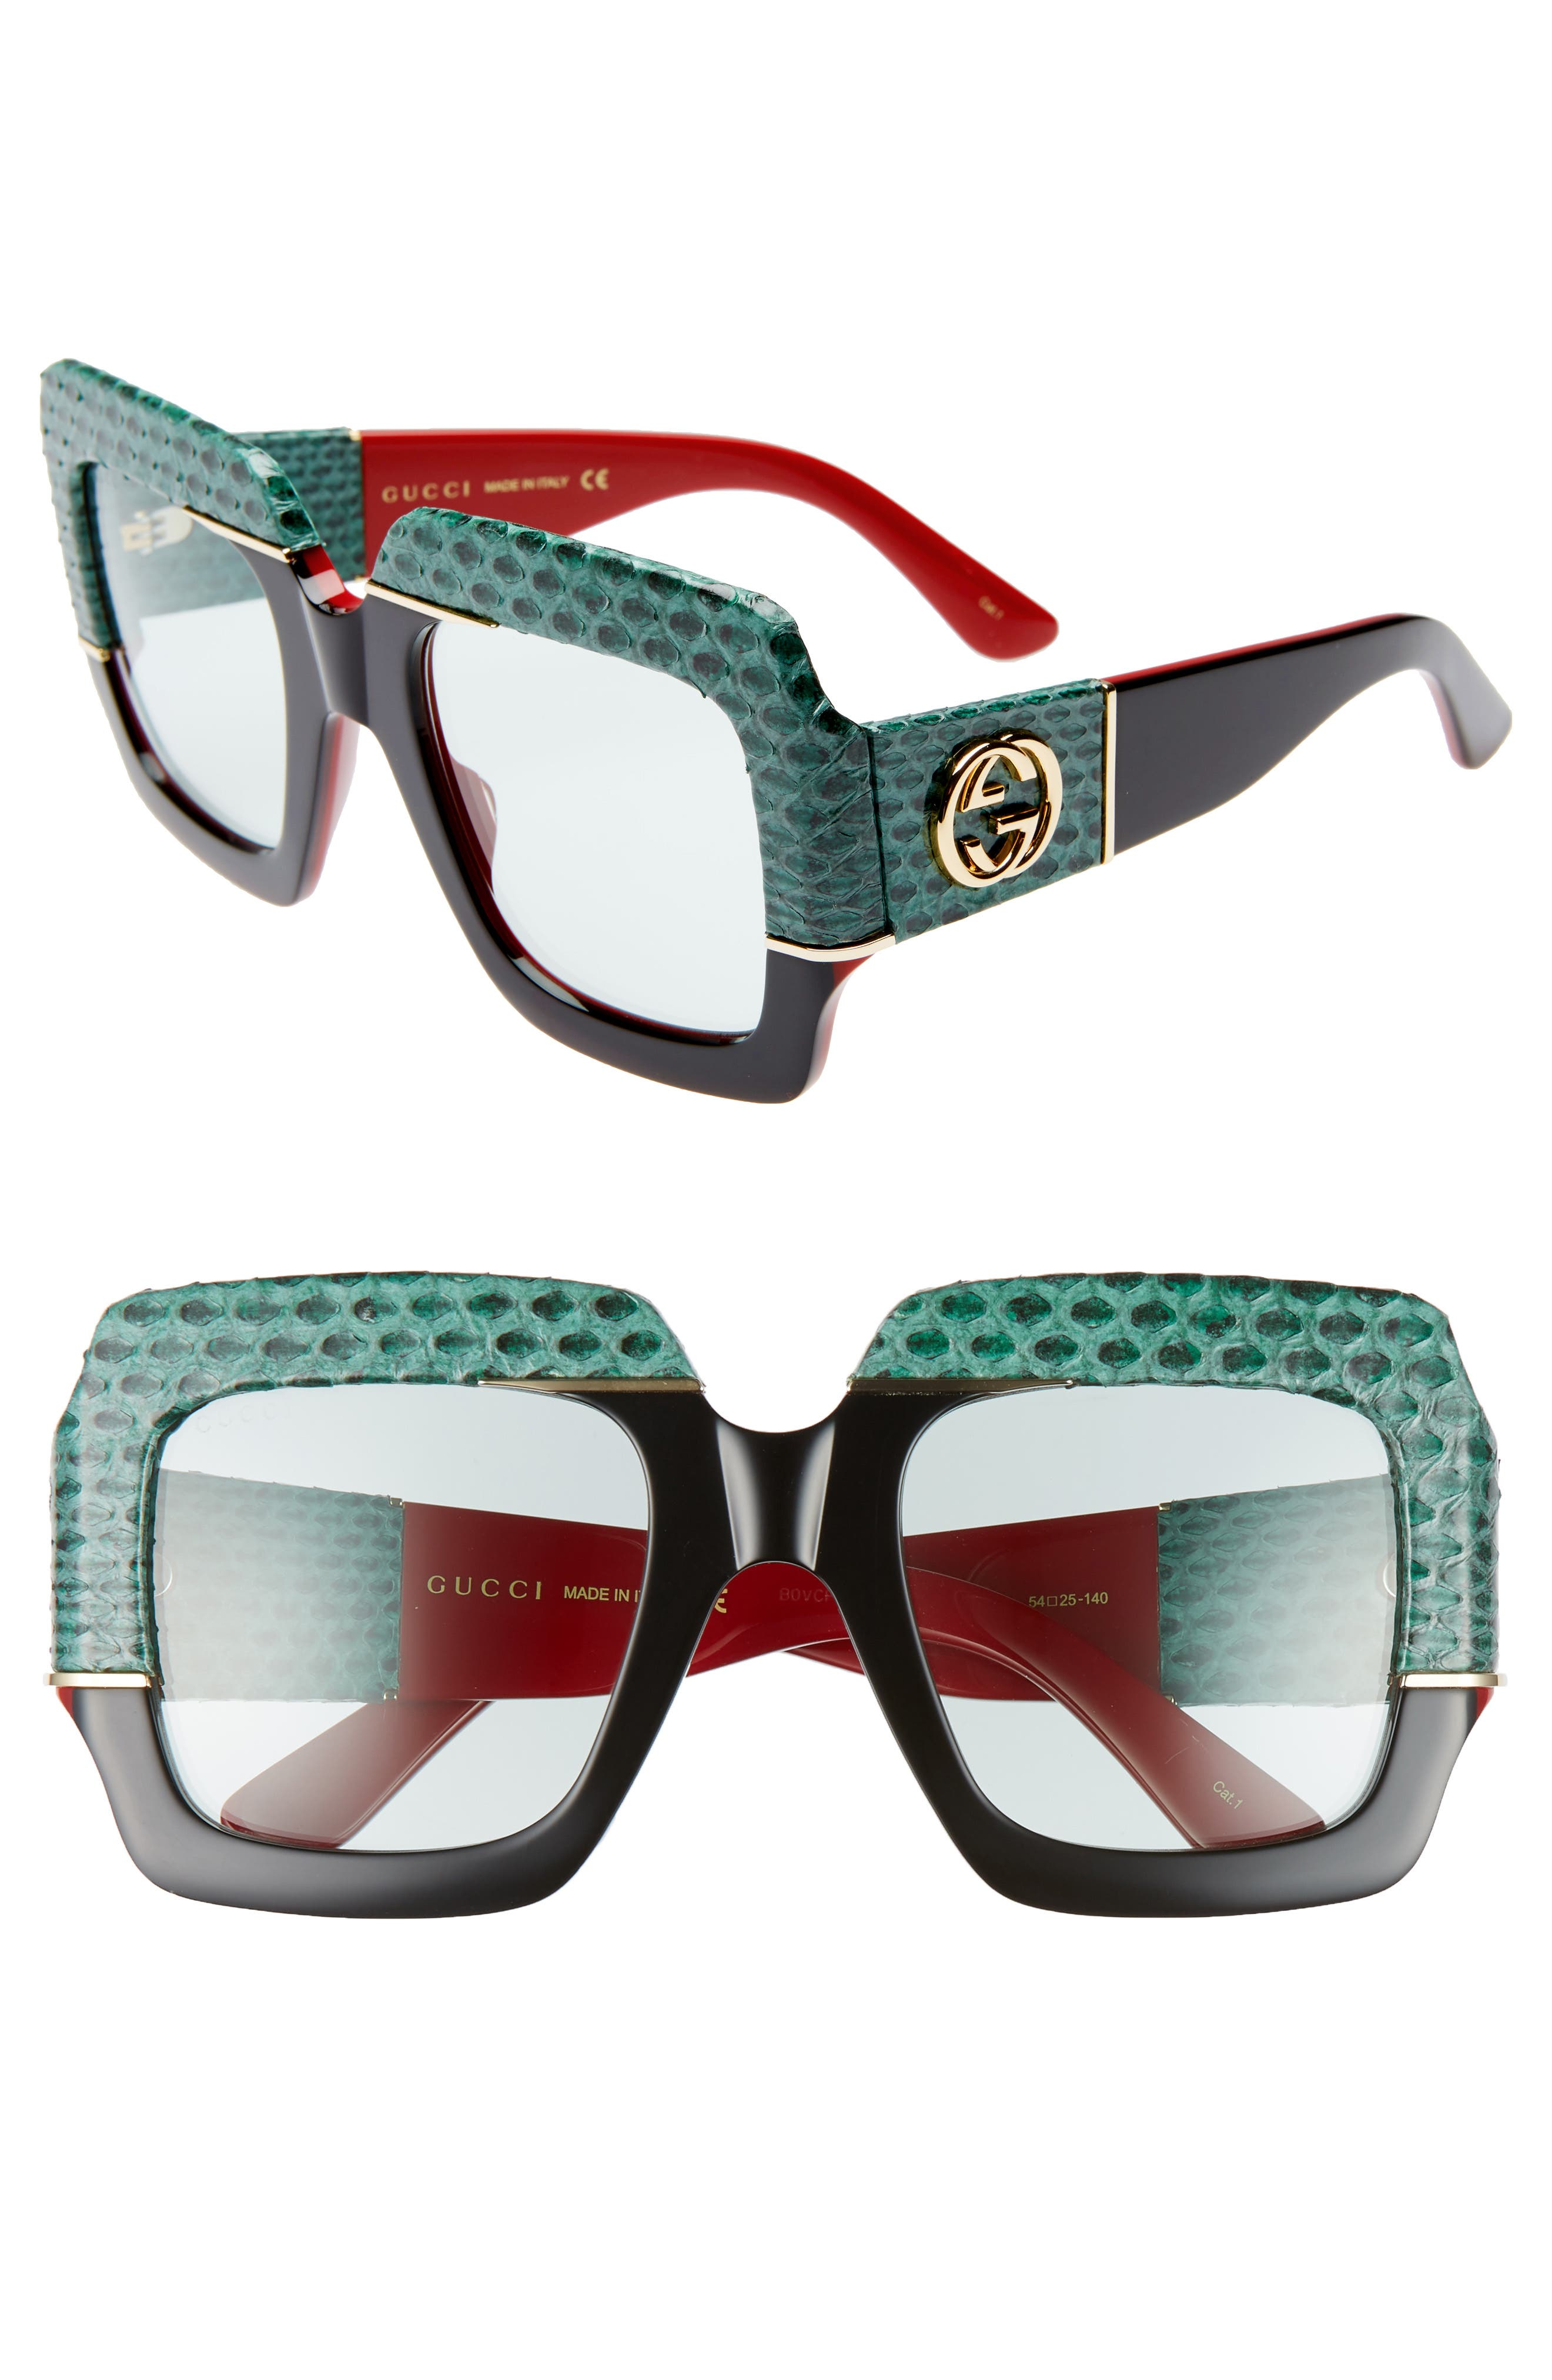 574e80aa0974 Women's Gucci New Arrivals: Clothing, Shoes & Beauty | Nordstrom